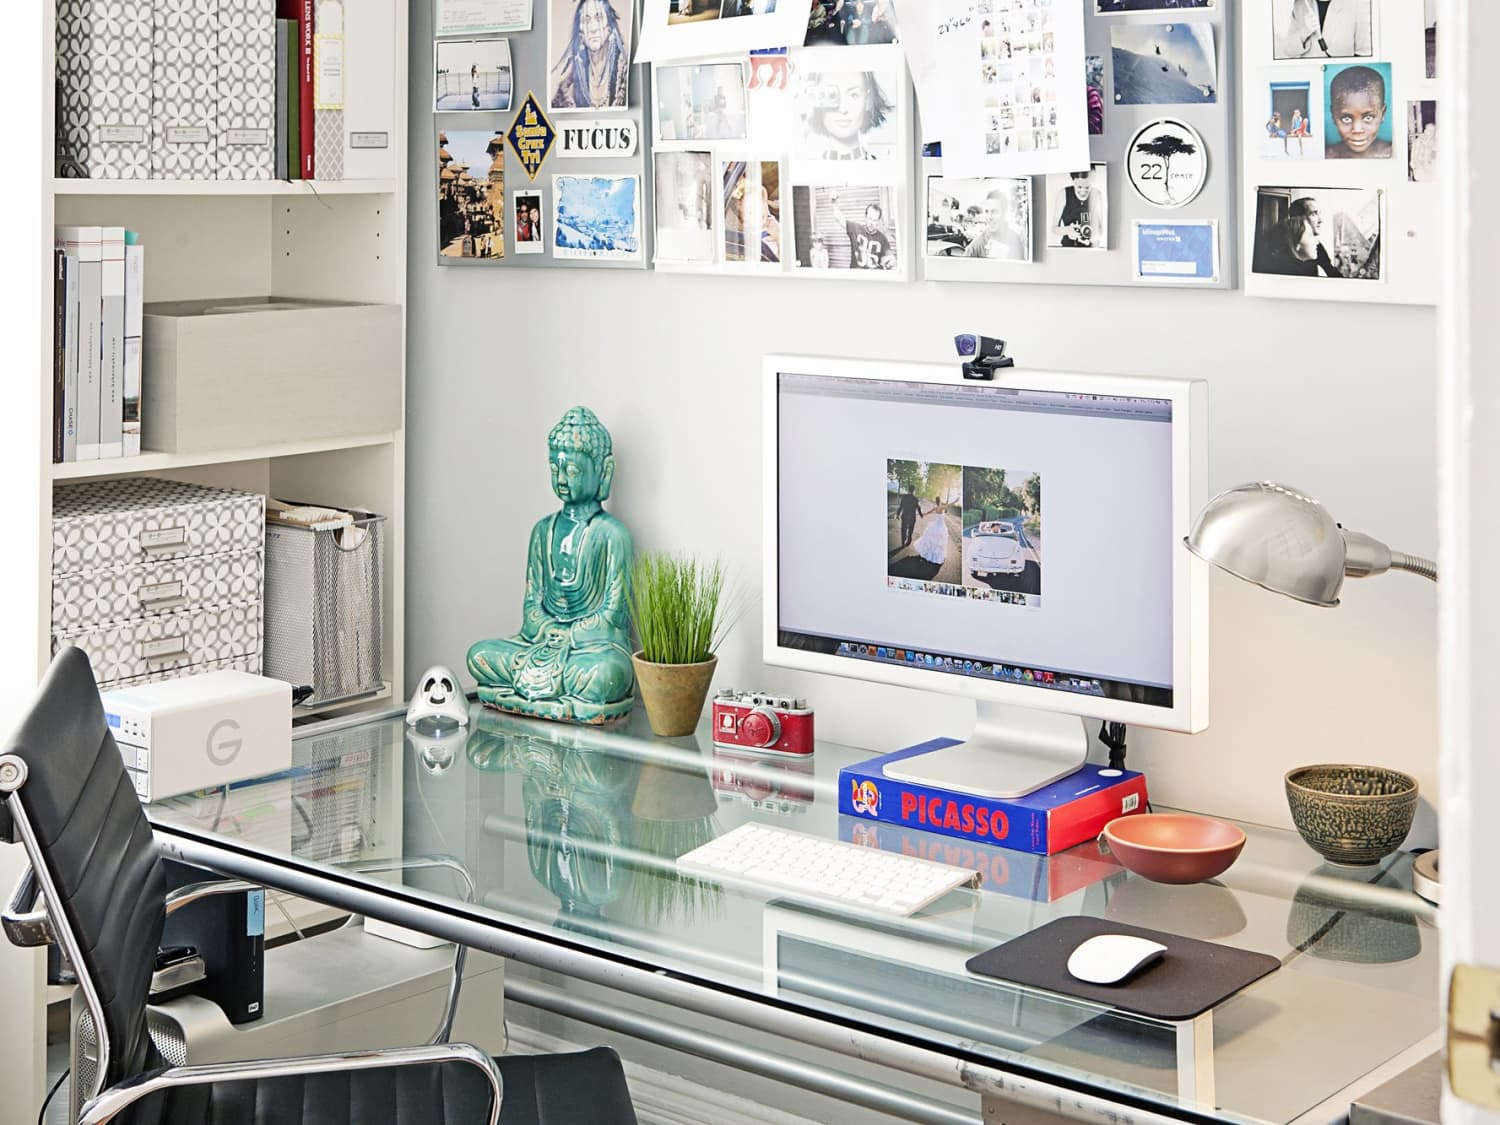 49 Ways to Organize a Desk Without Drawers  Apartment Therapy